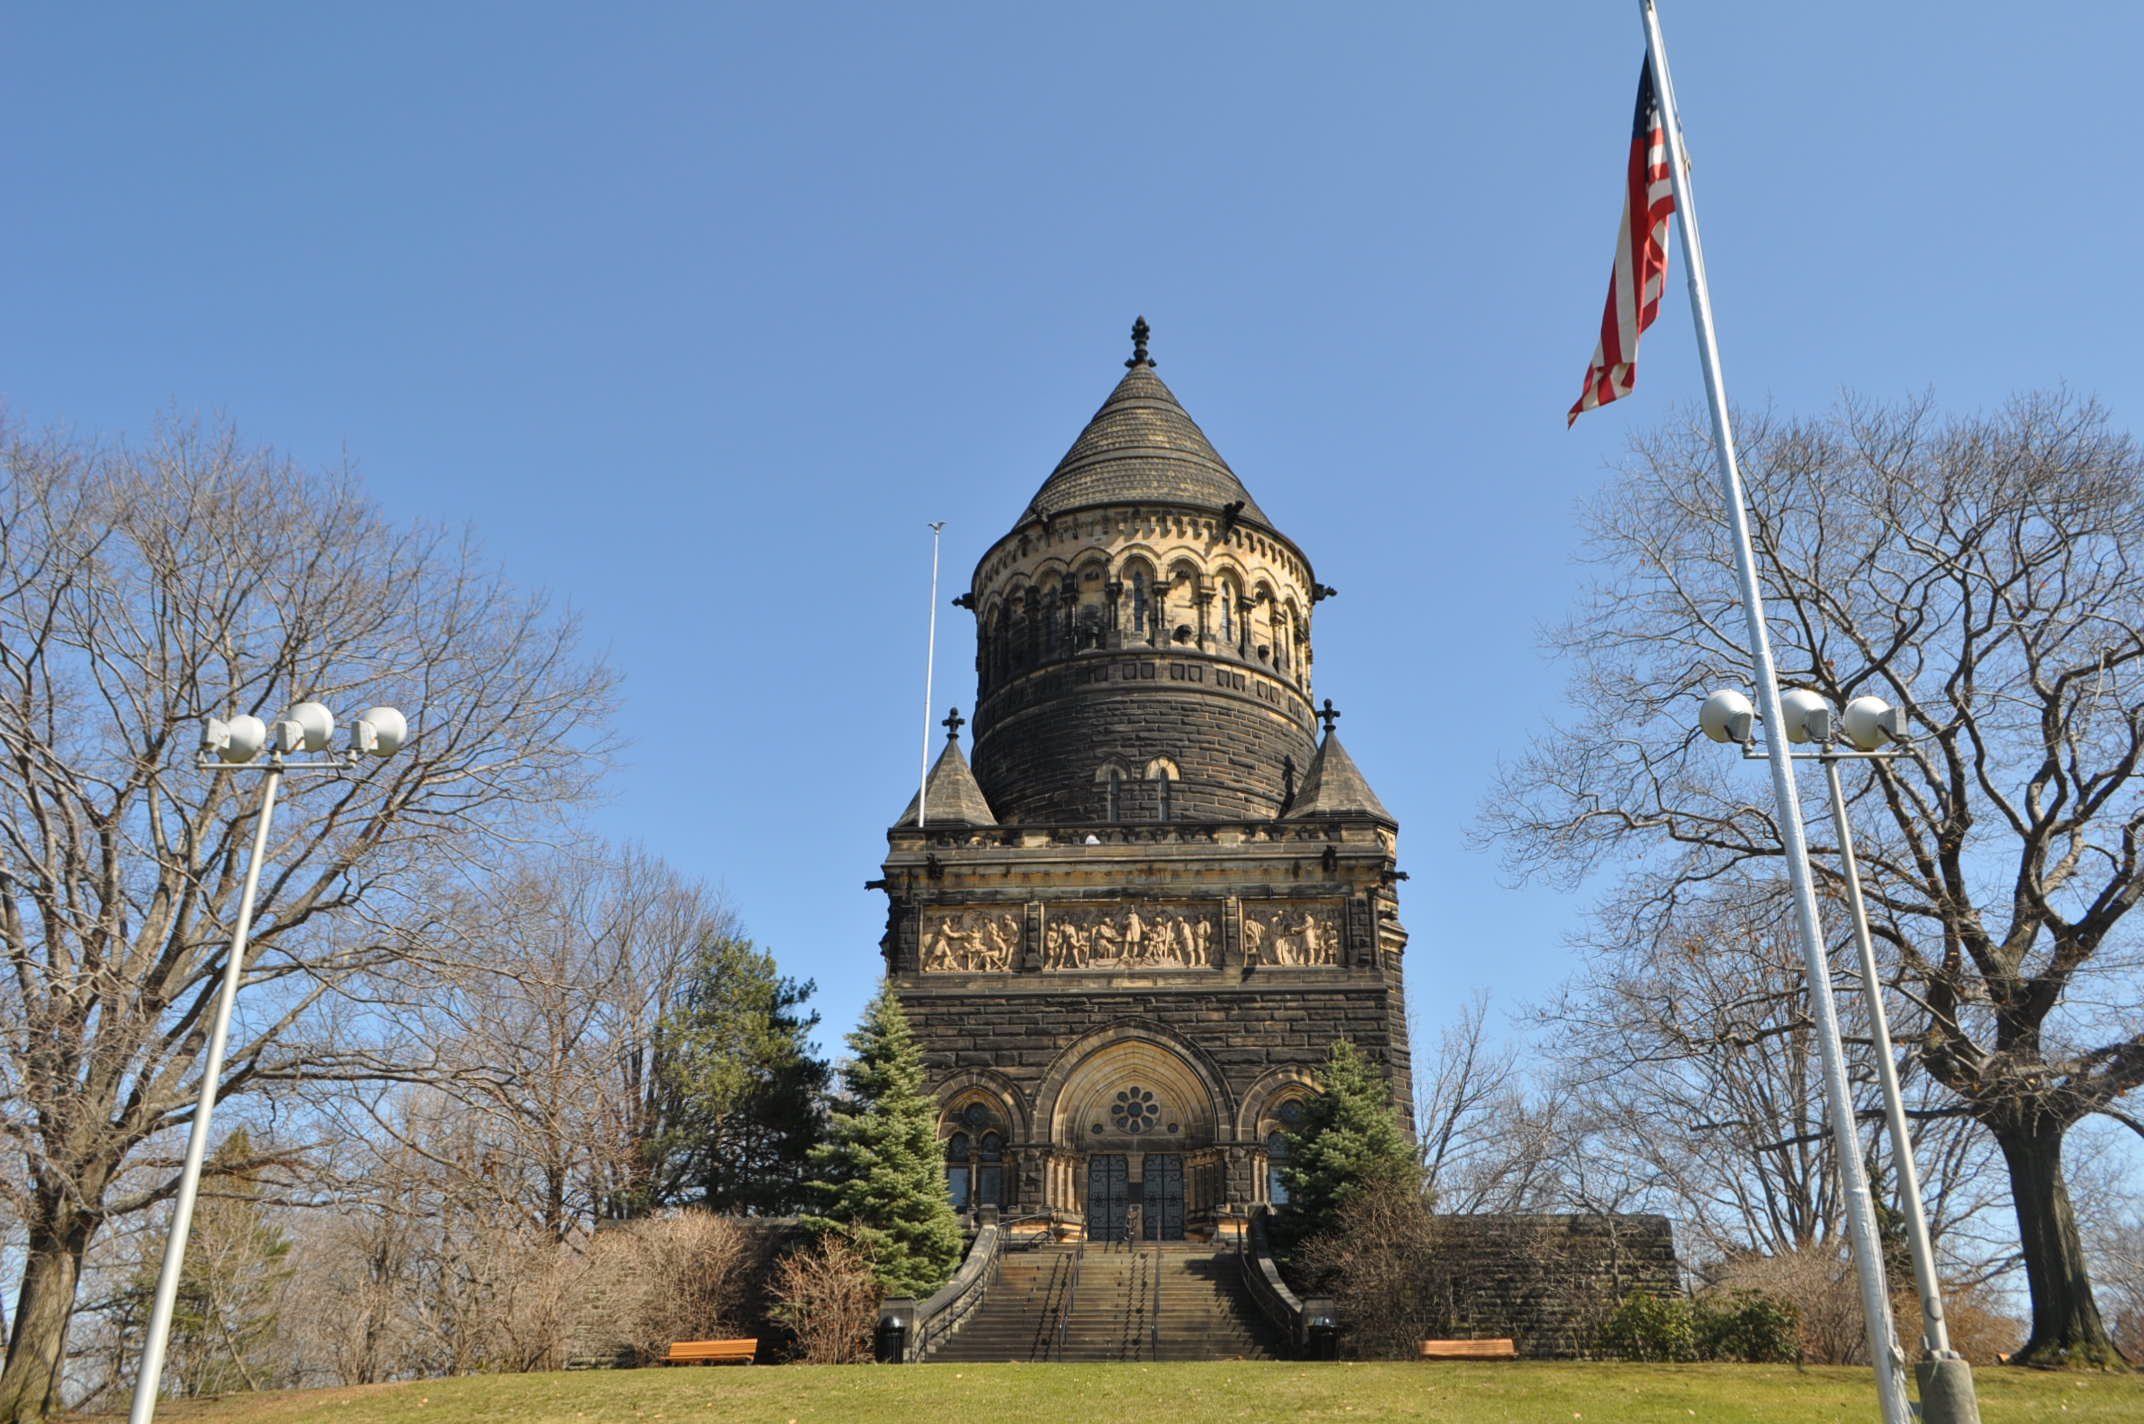 President Garfield's Monument paranormal